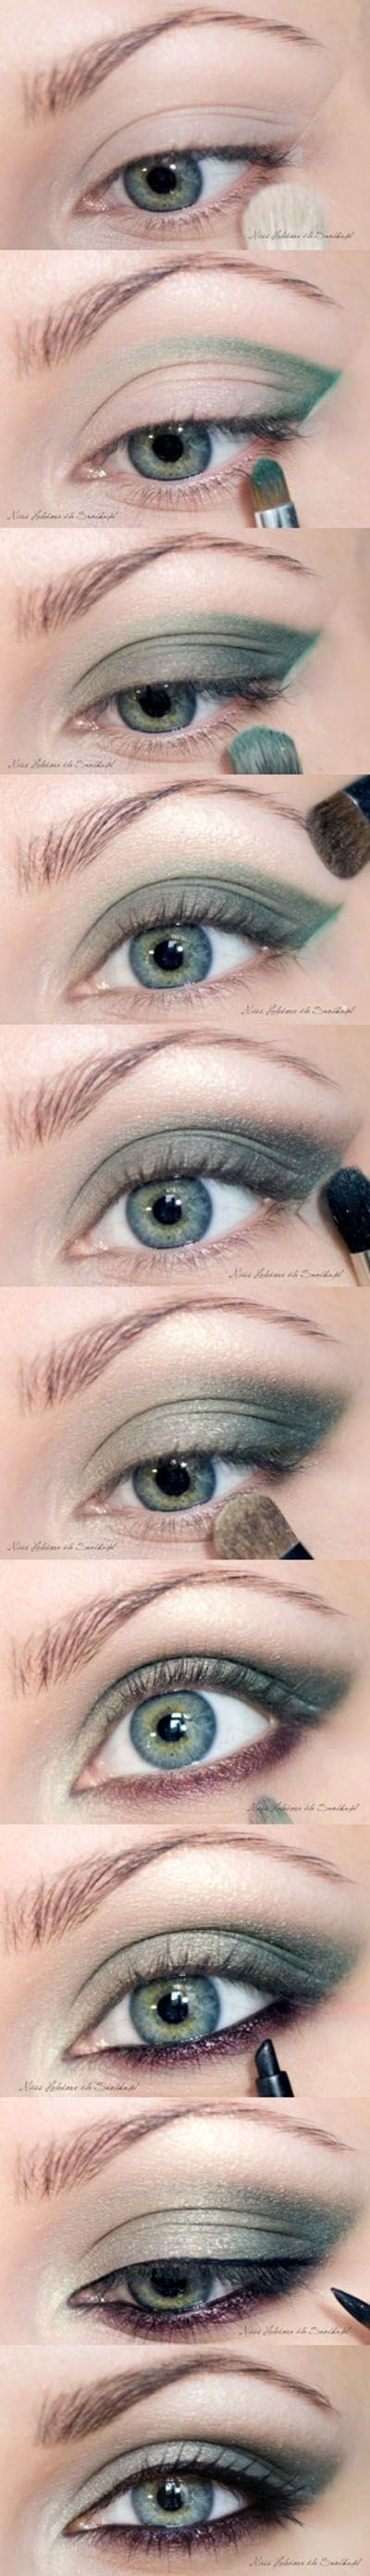 GirlsGuideTo | 10 Wonderful Winter Makeup Tutorials | GirlsGuideTo